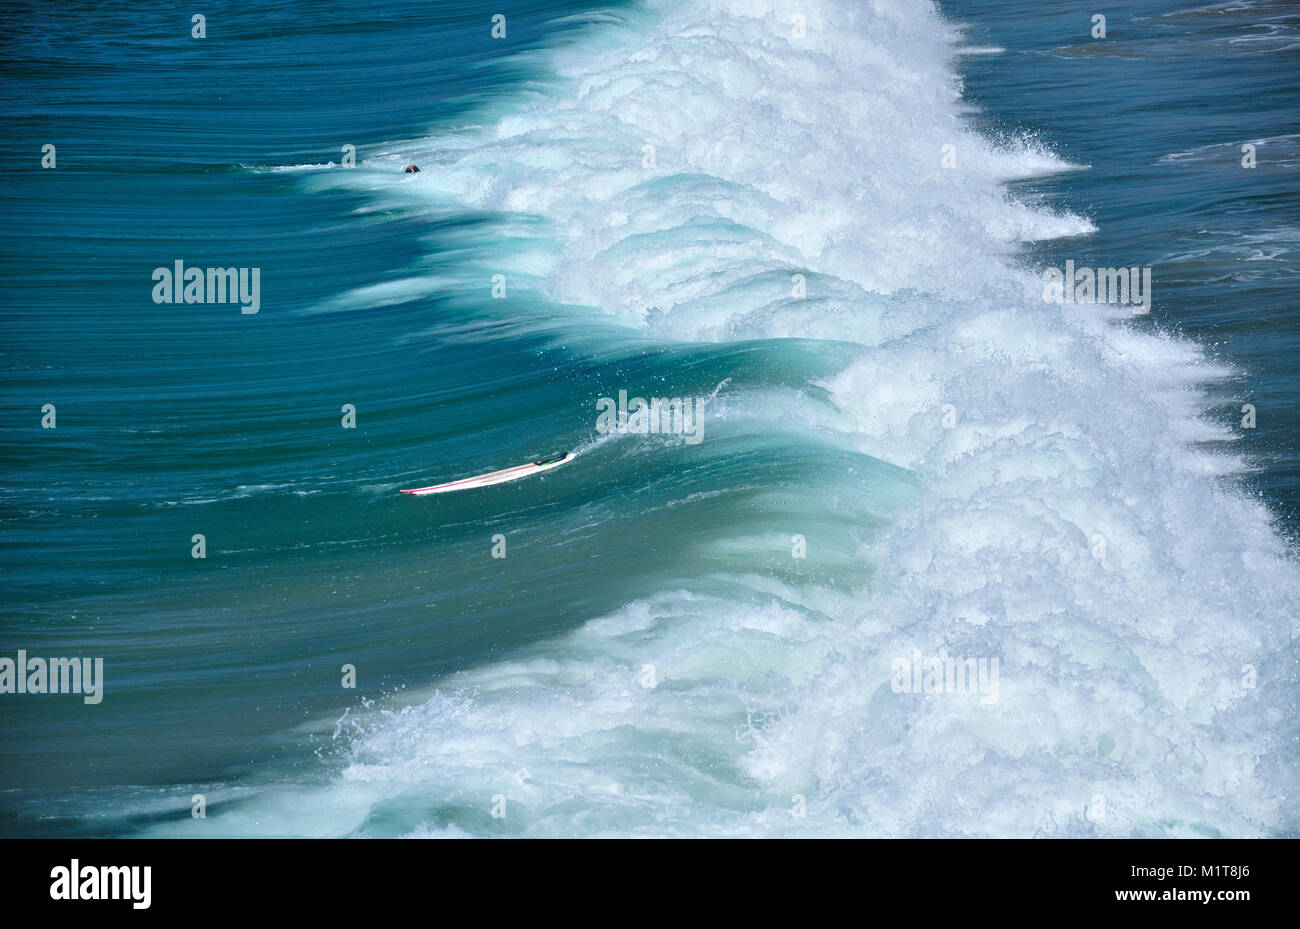 A surfer wiping out in the Pacific Ocean waves crashing down on Manhattan beach california on a sunny day on the - Stock Image